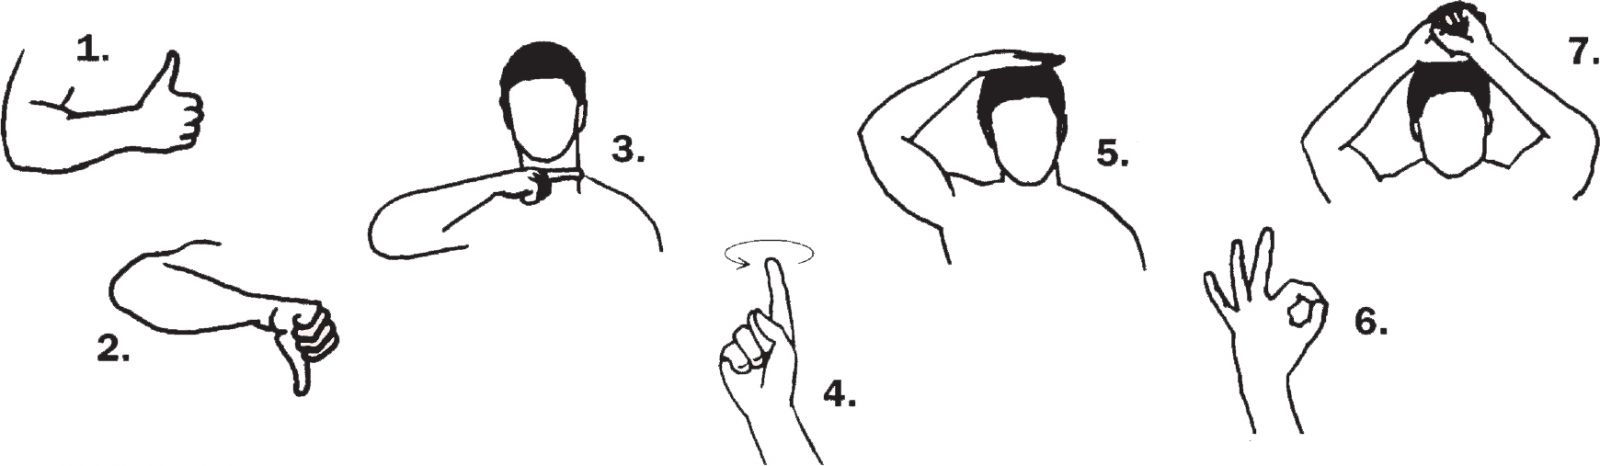 Hand Signals for Skiing